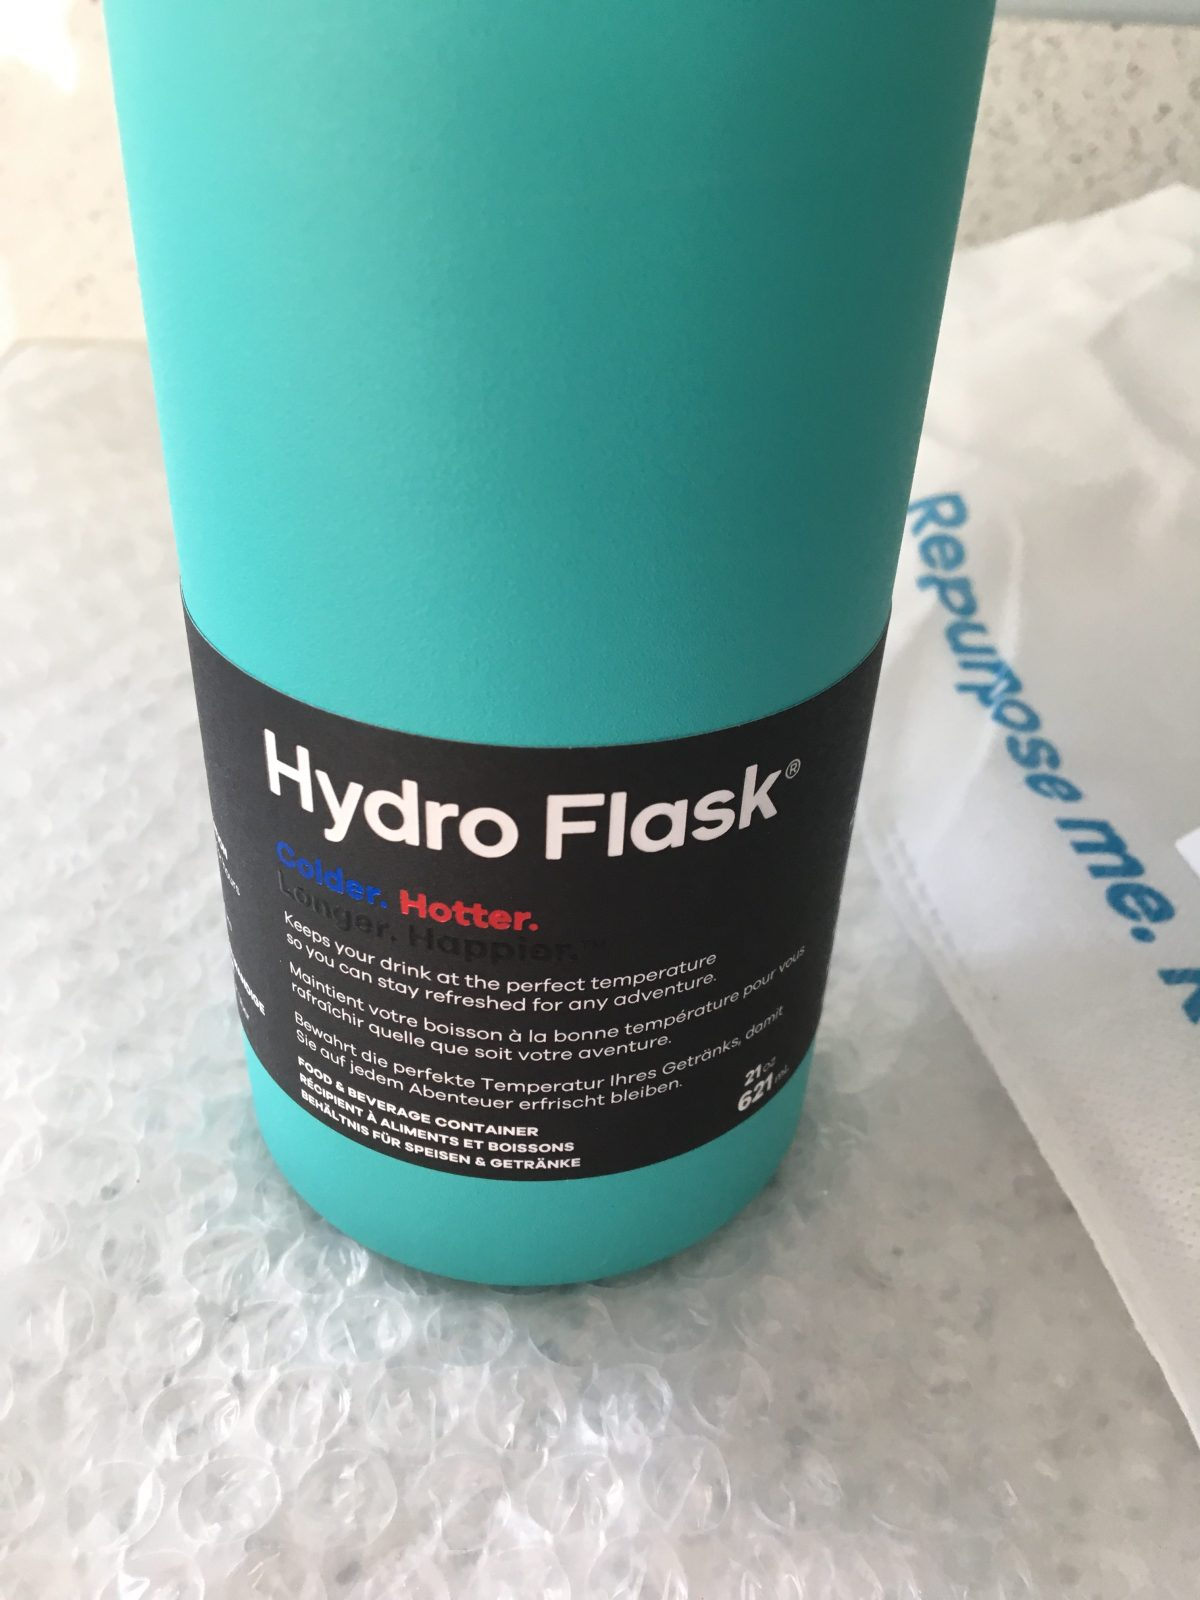 Hydro flask the only bottle you will need.